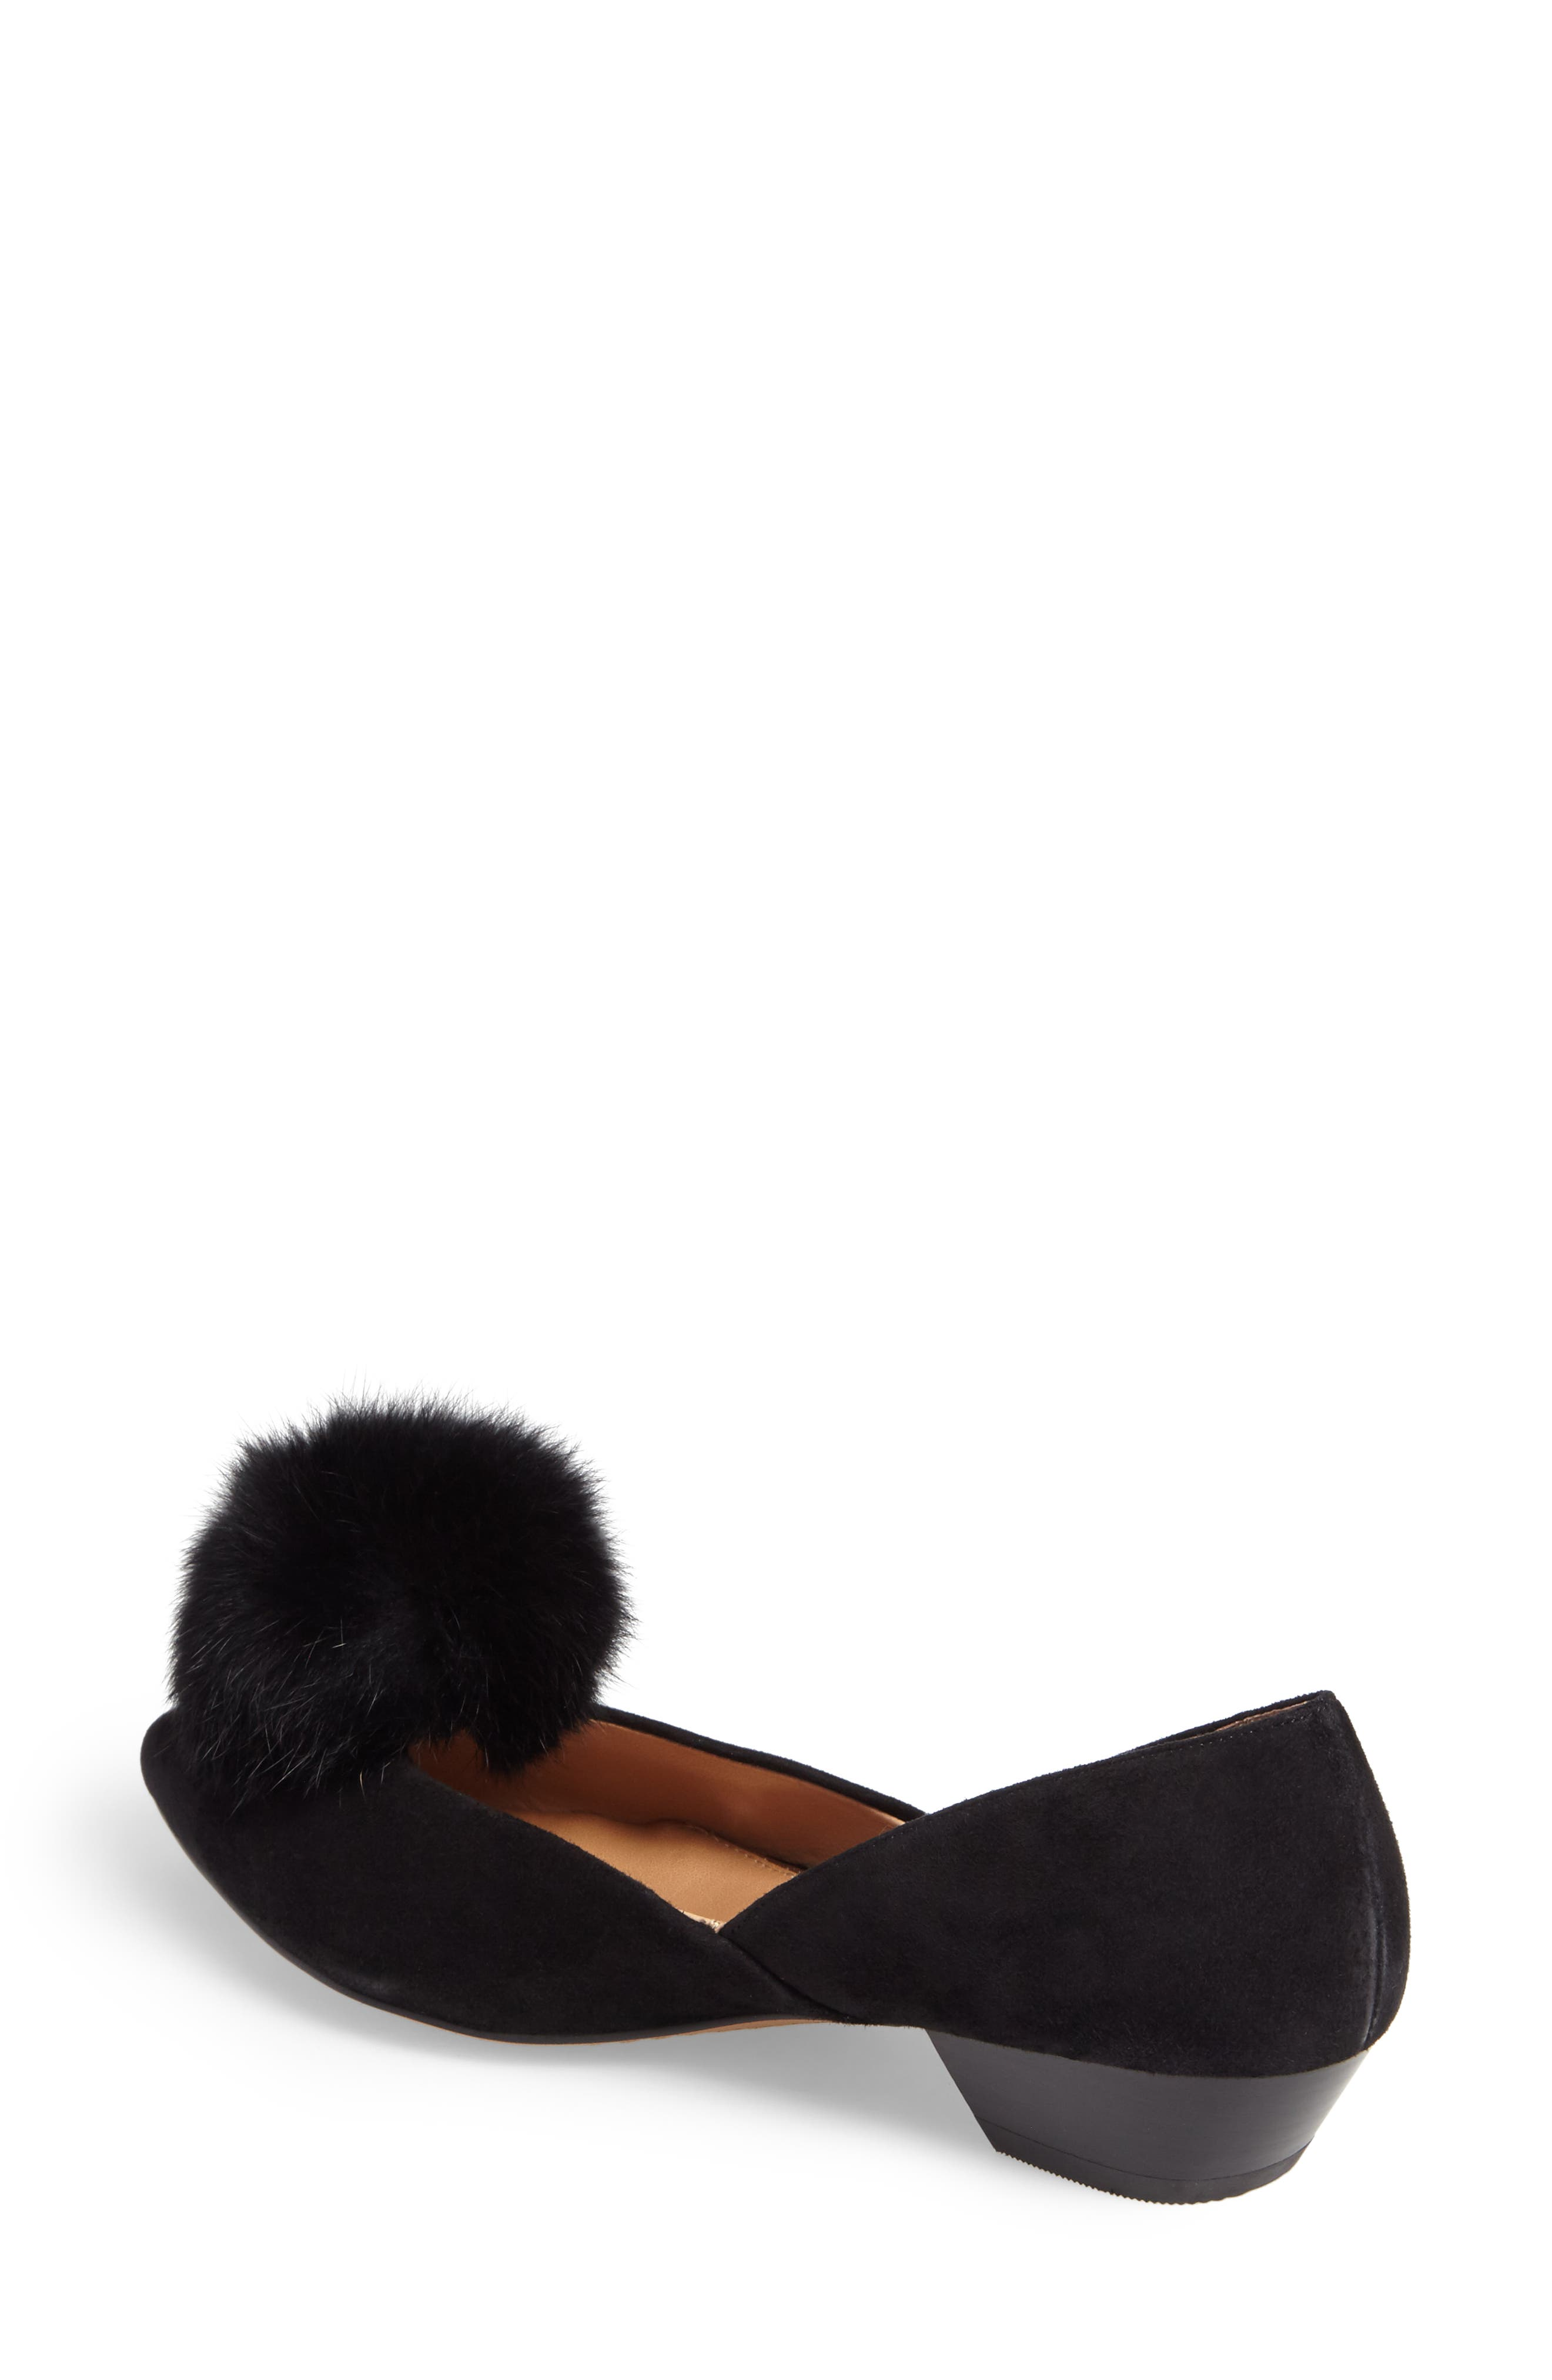 Camille Pump with Genuine Rabbit Fur Pom,                             Alternate thumbnail 2, color,                             002